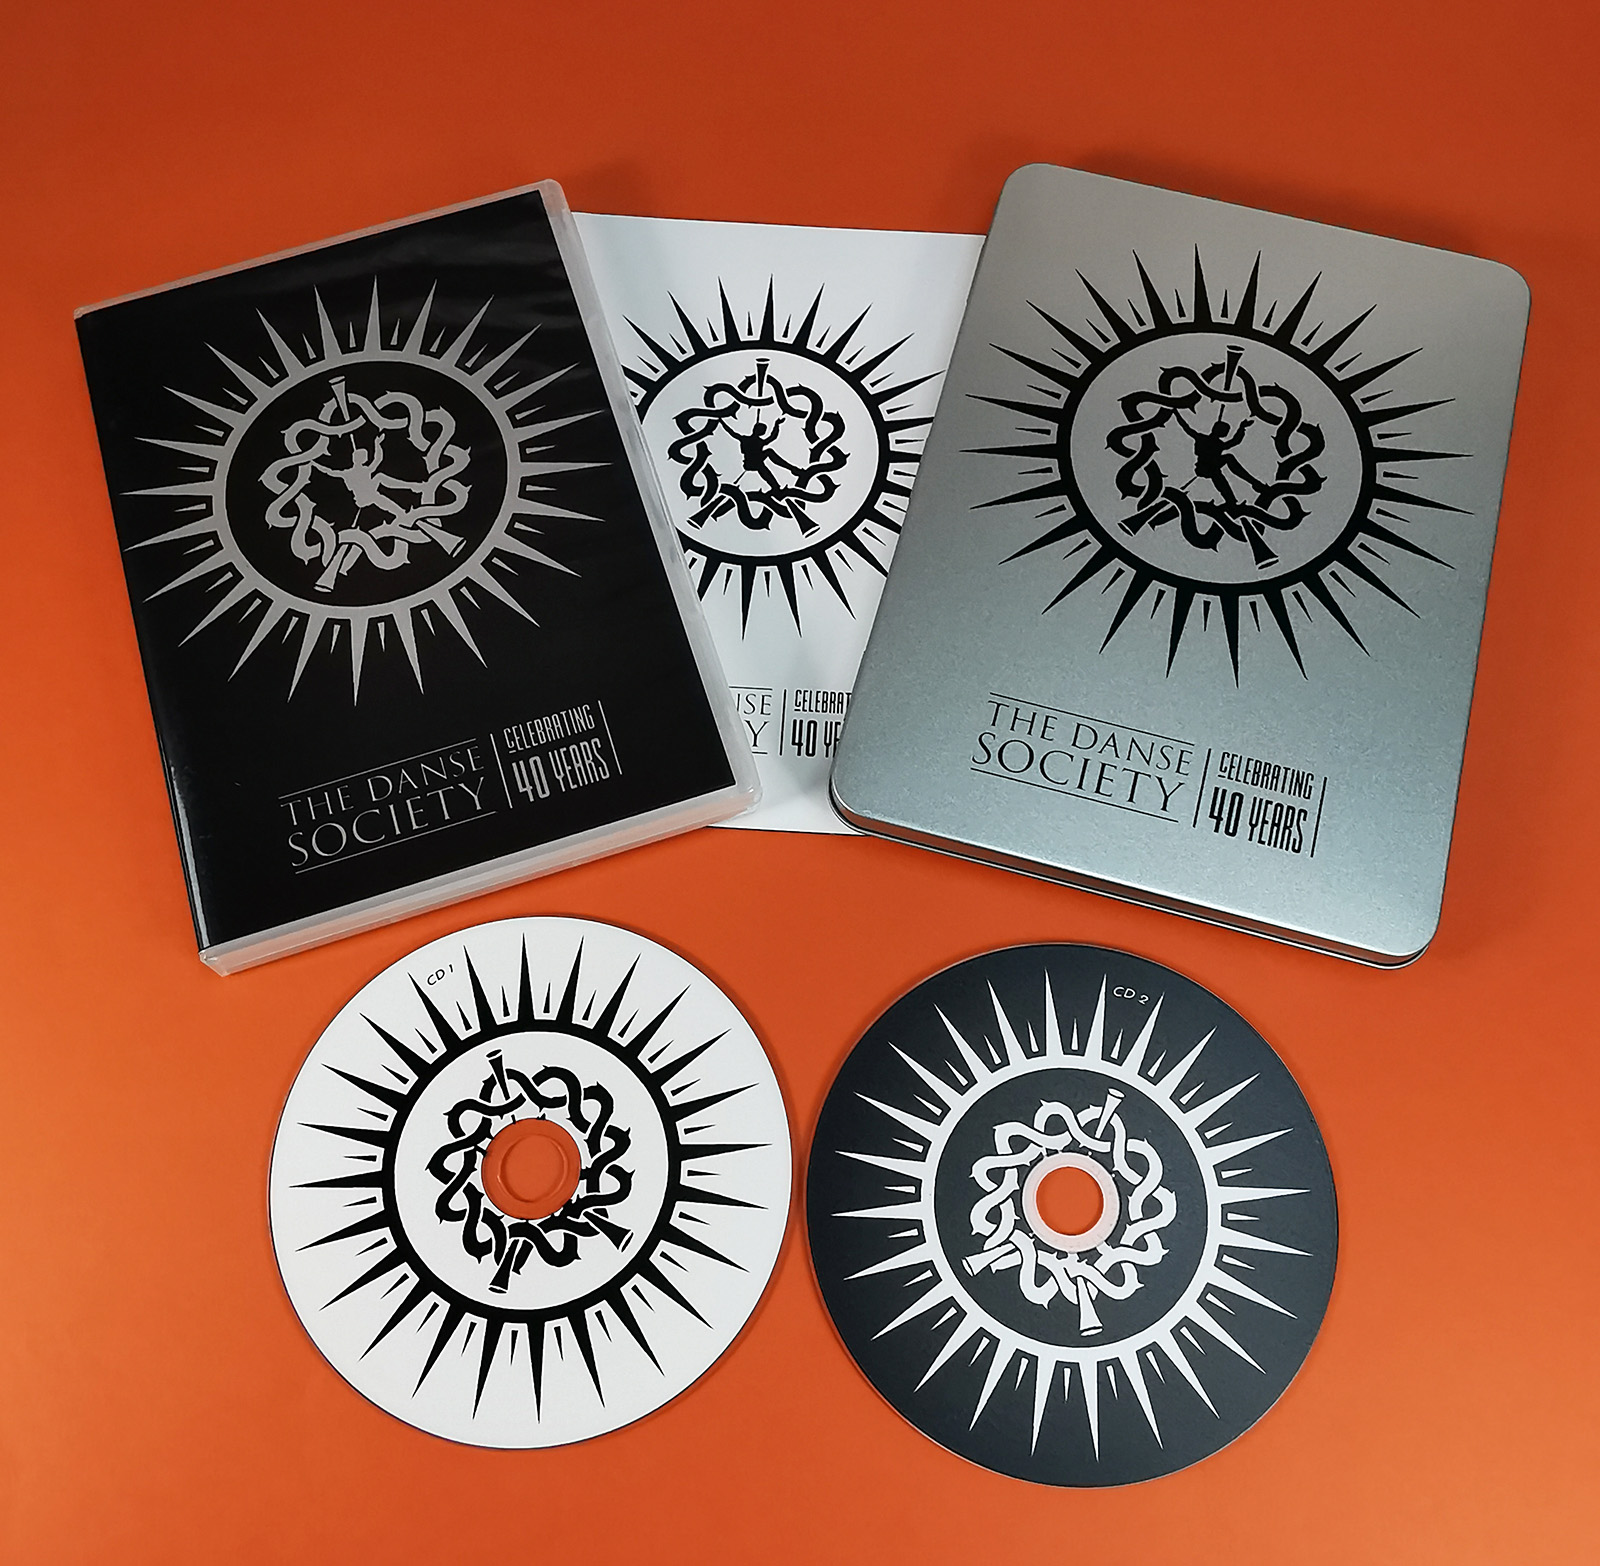 Metal DVD tins with a black on-body print and two CDs inside for The Danse Society